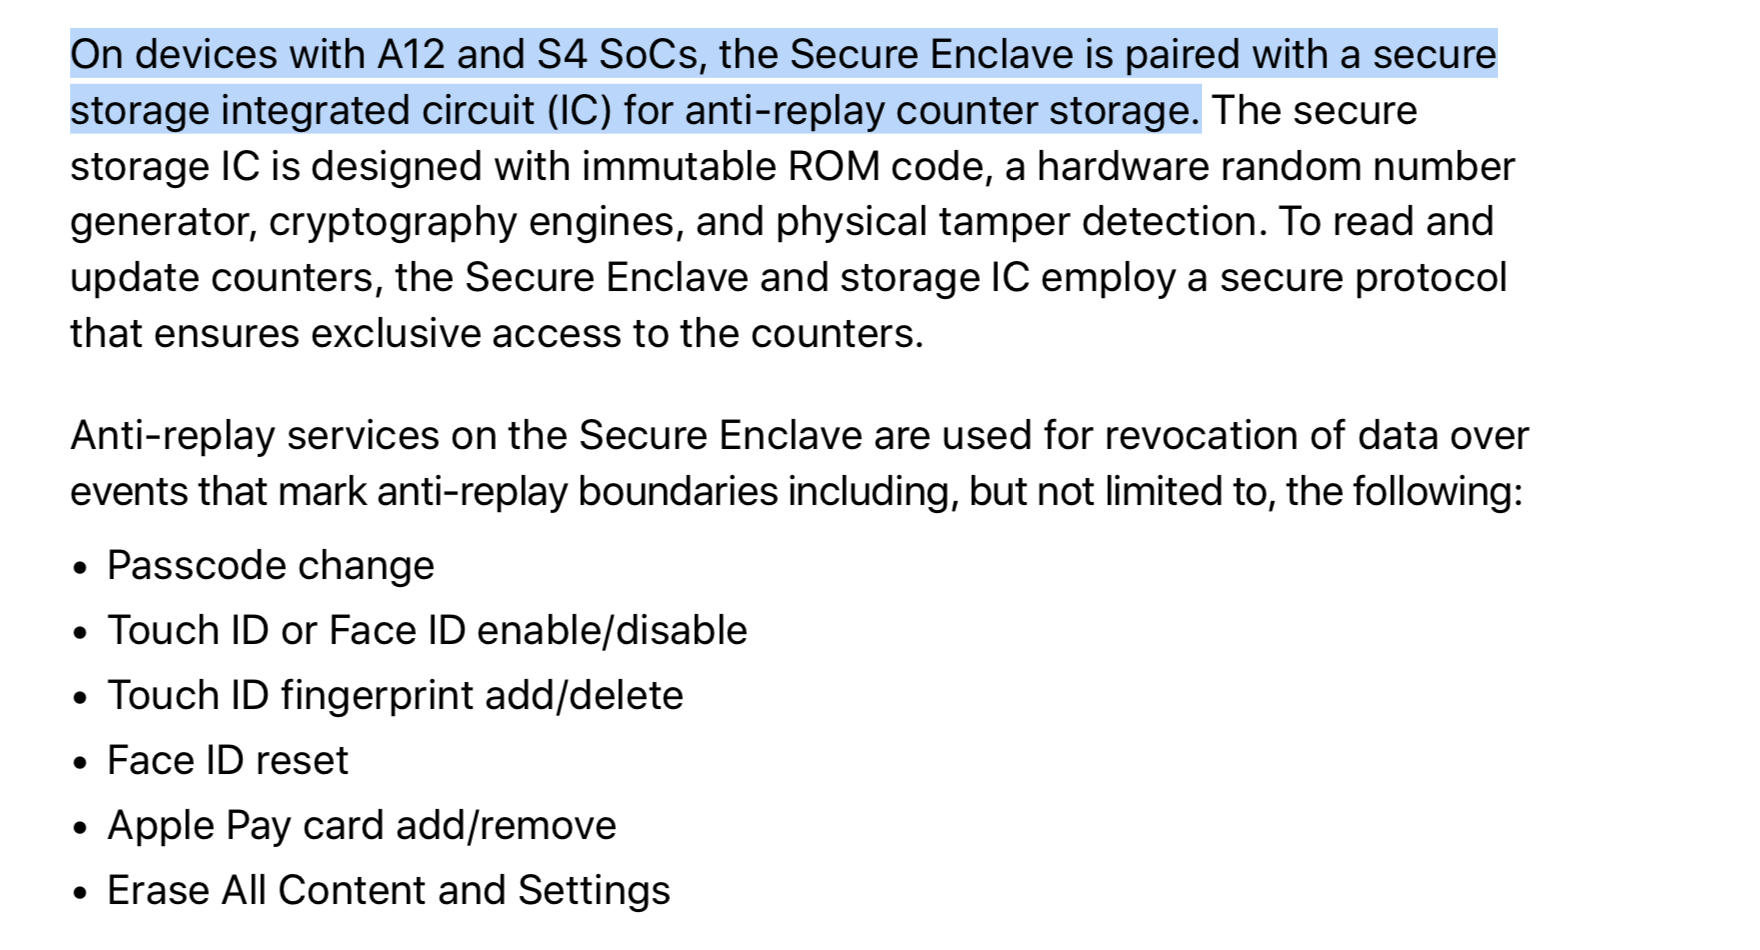 4 New Security Features For Apple A12 And S4 That Weren't Mentioned